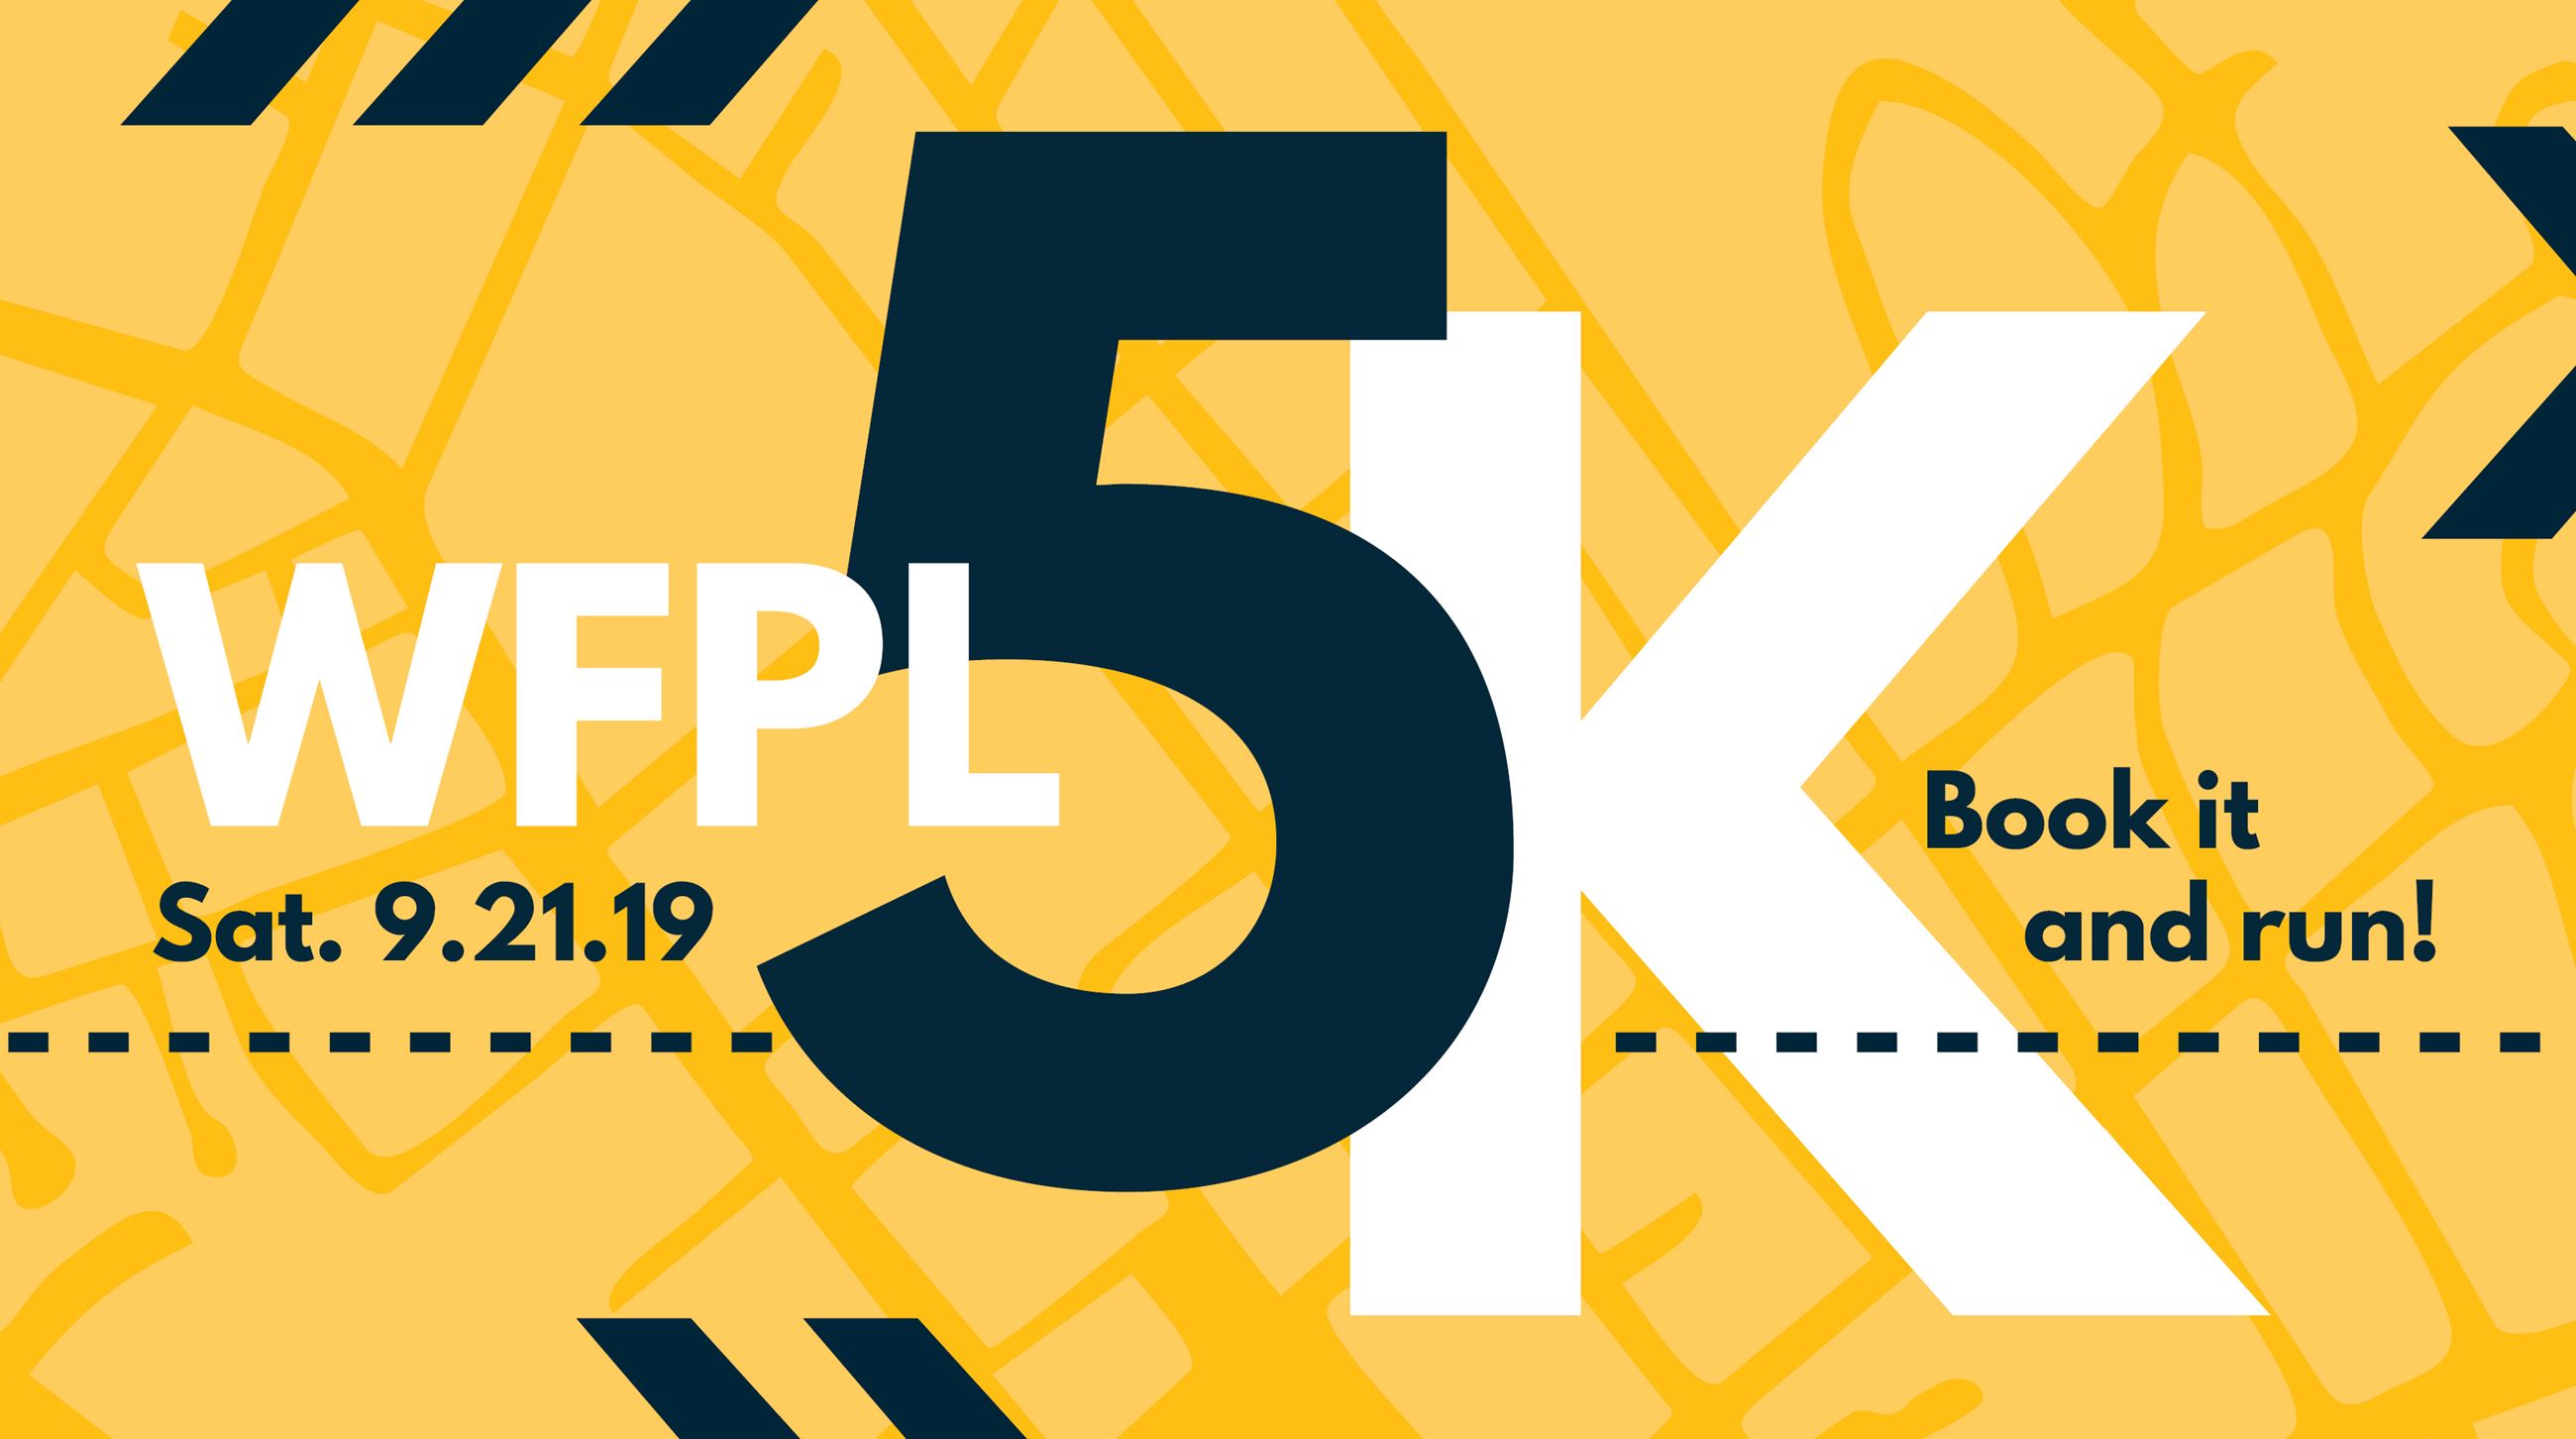 WFPL is holding the 6th Annual Book It and Run 5K on Sat. September 21, 2019.